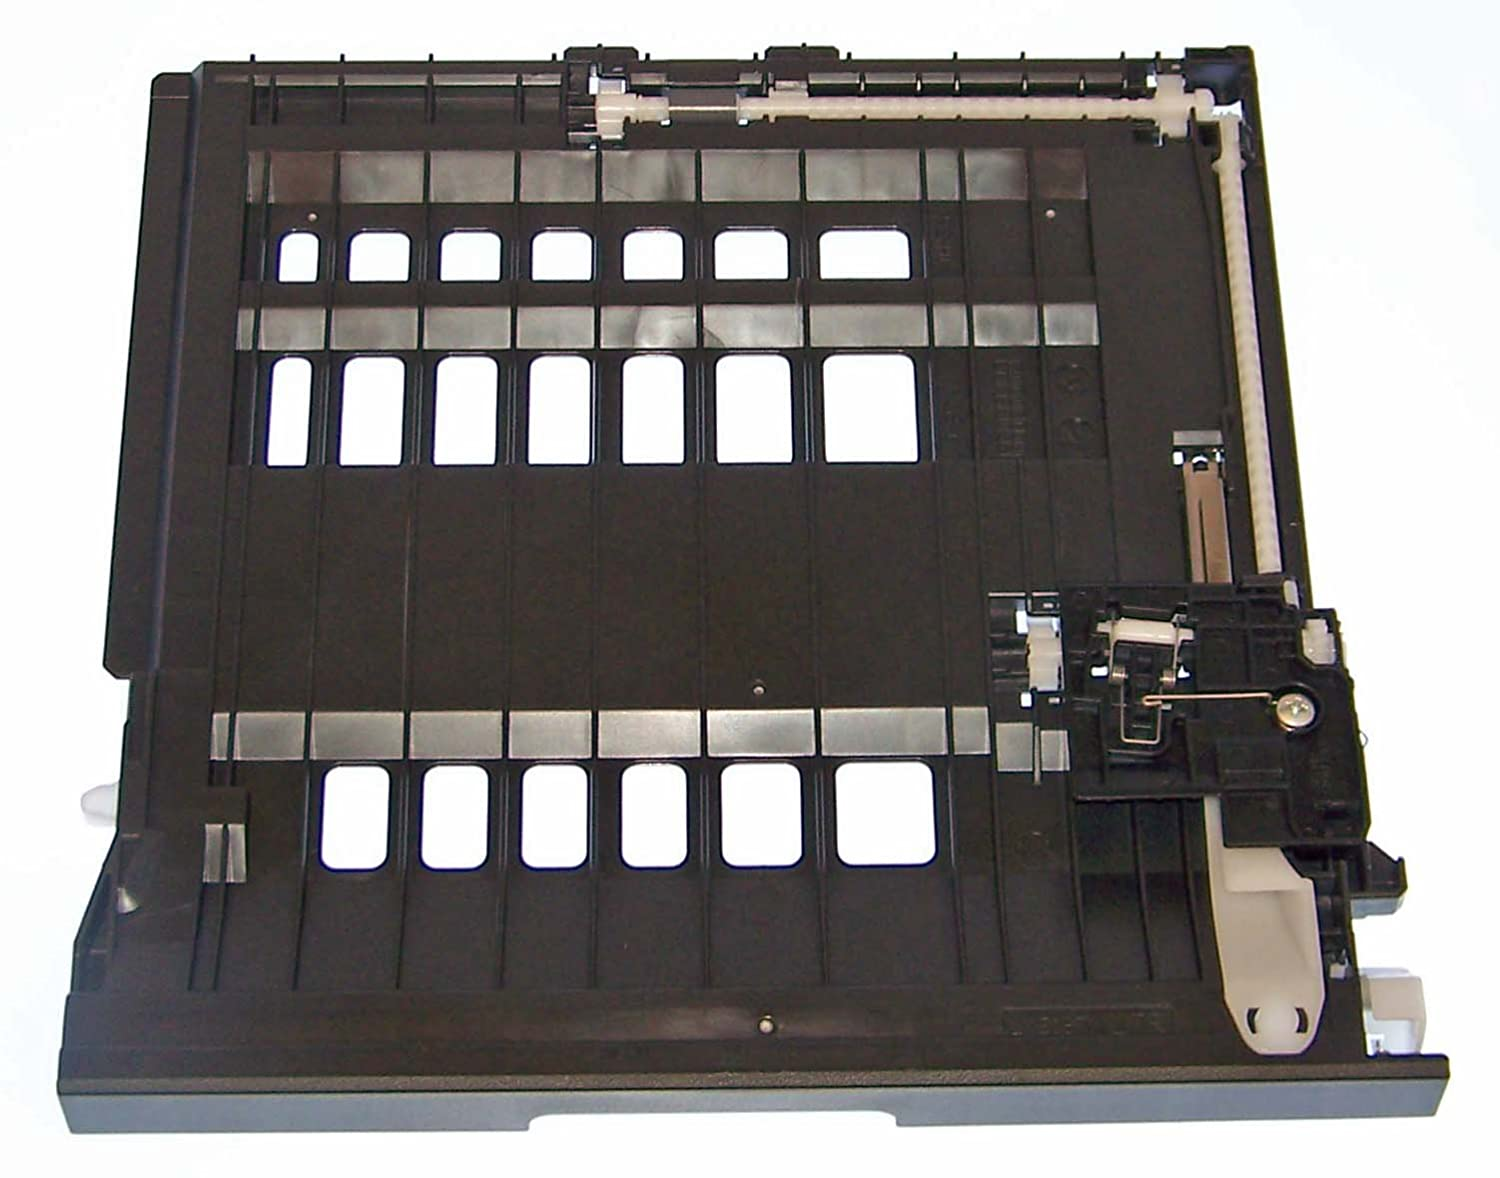 OEM Brother Paper Duplex Duplexer Tray for MFC7460DN, MFC-7460DN, MFC7860DW, MFC-7860DW